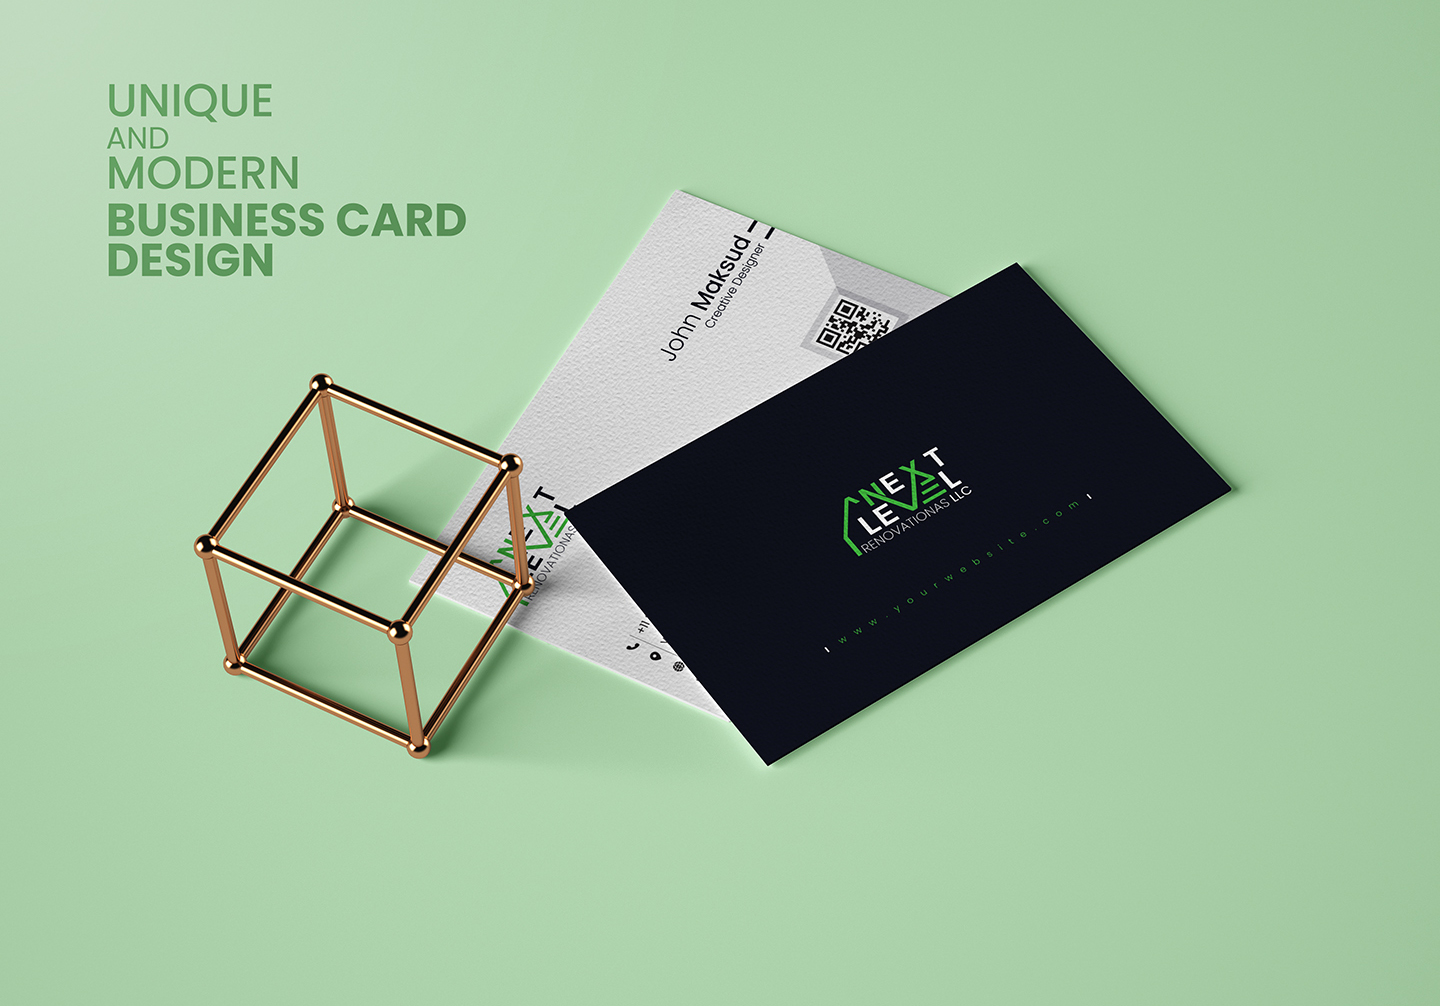 I will create unique and modern Business Card Design in 6 hours